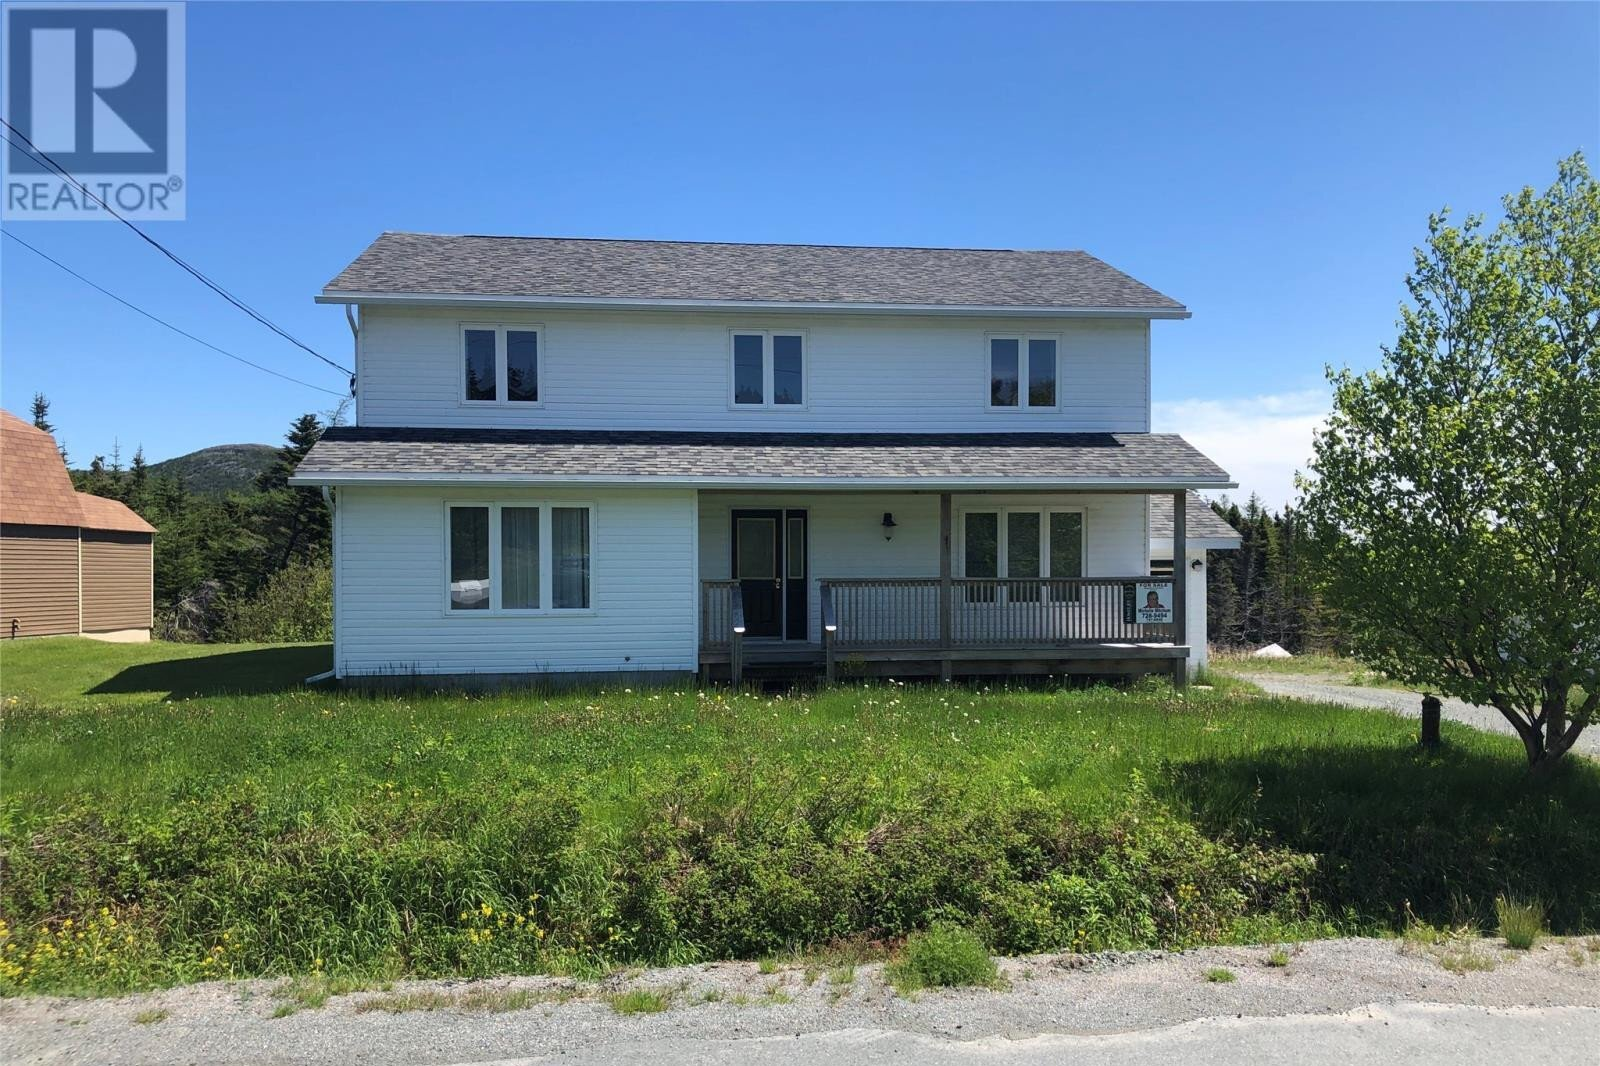 House for sale at 91 Track Rd Extension Bay Bulls Newfoundland - MLS: 1213092